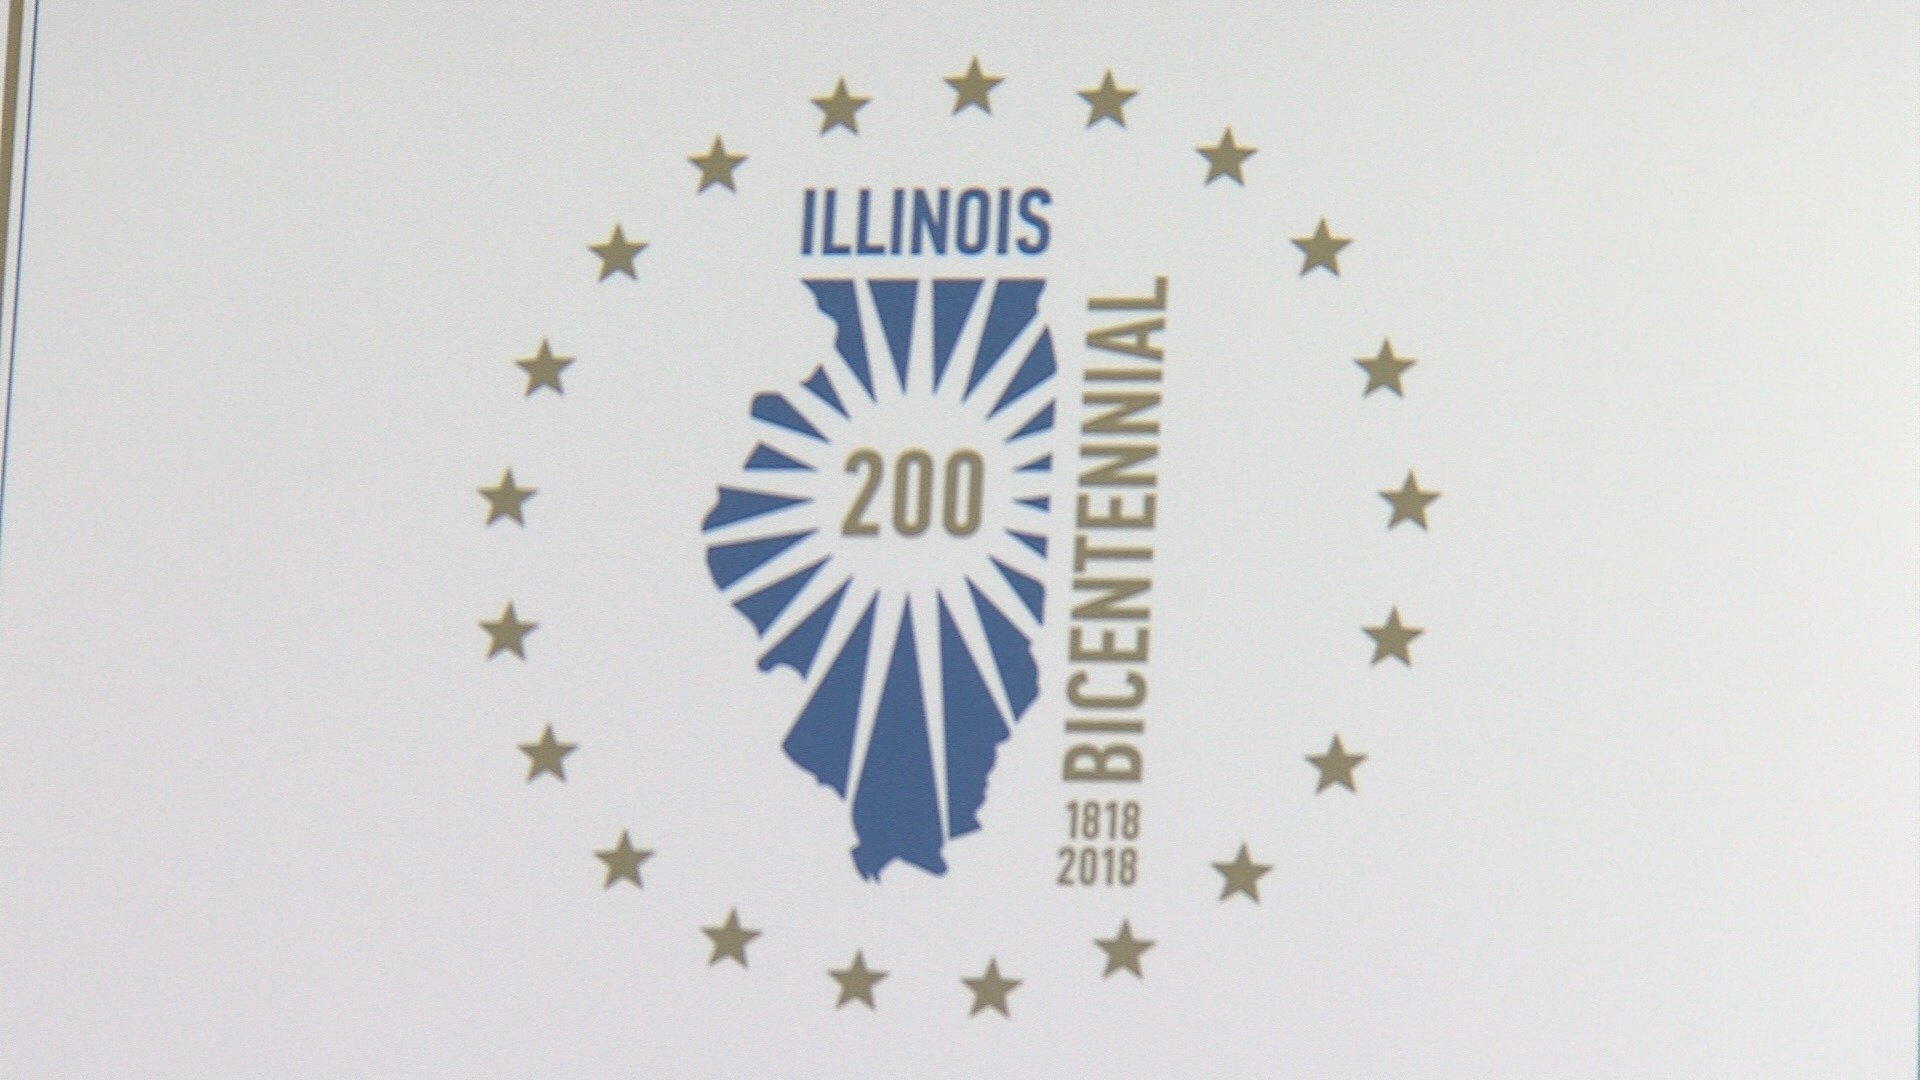 Union County kicks off Illinois' bicentennial celebration